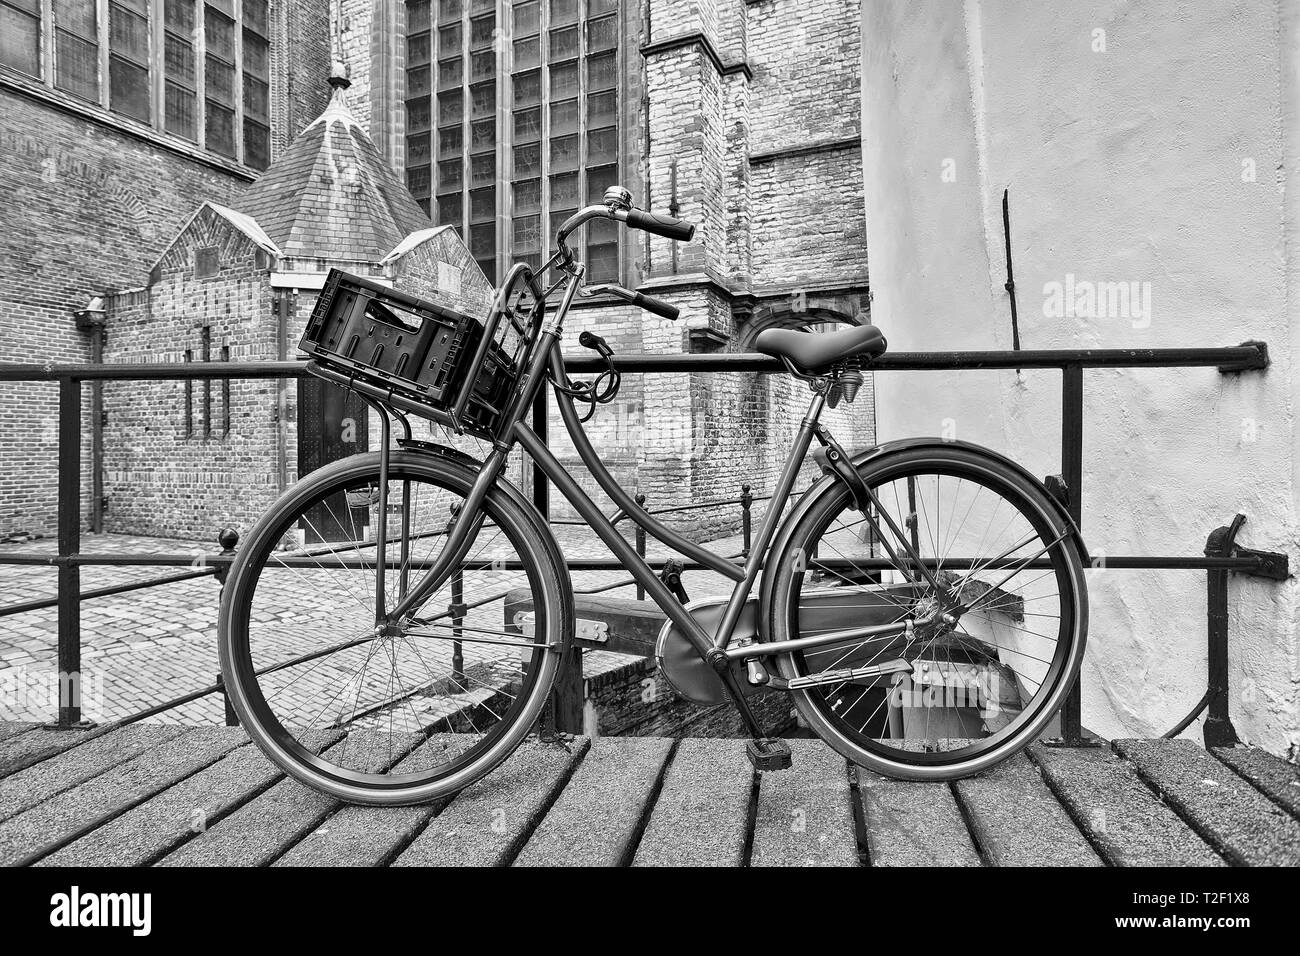 Retro style black bicycle parked against a railing, Gouda, The Netherlands - Stock Image